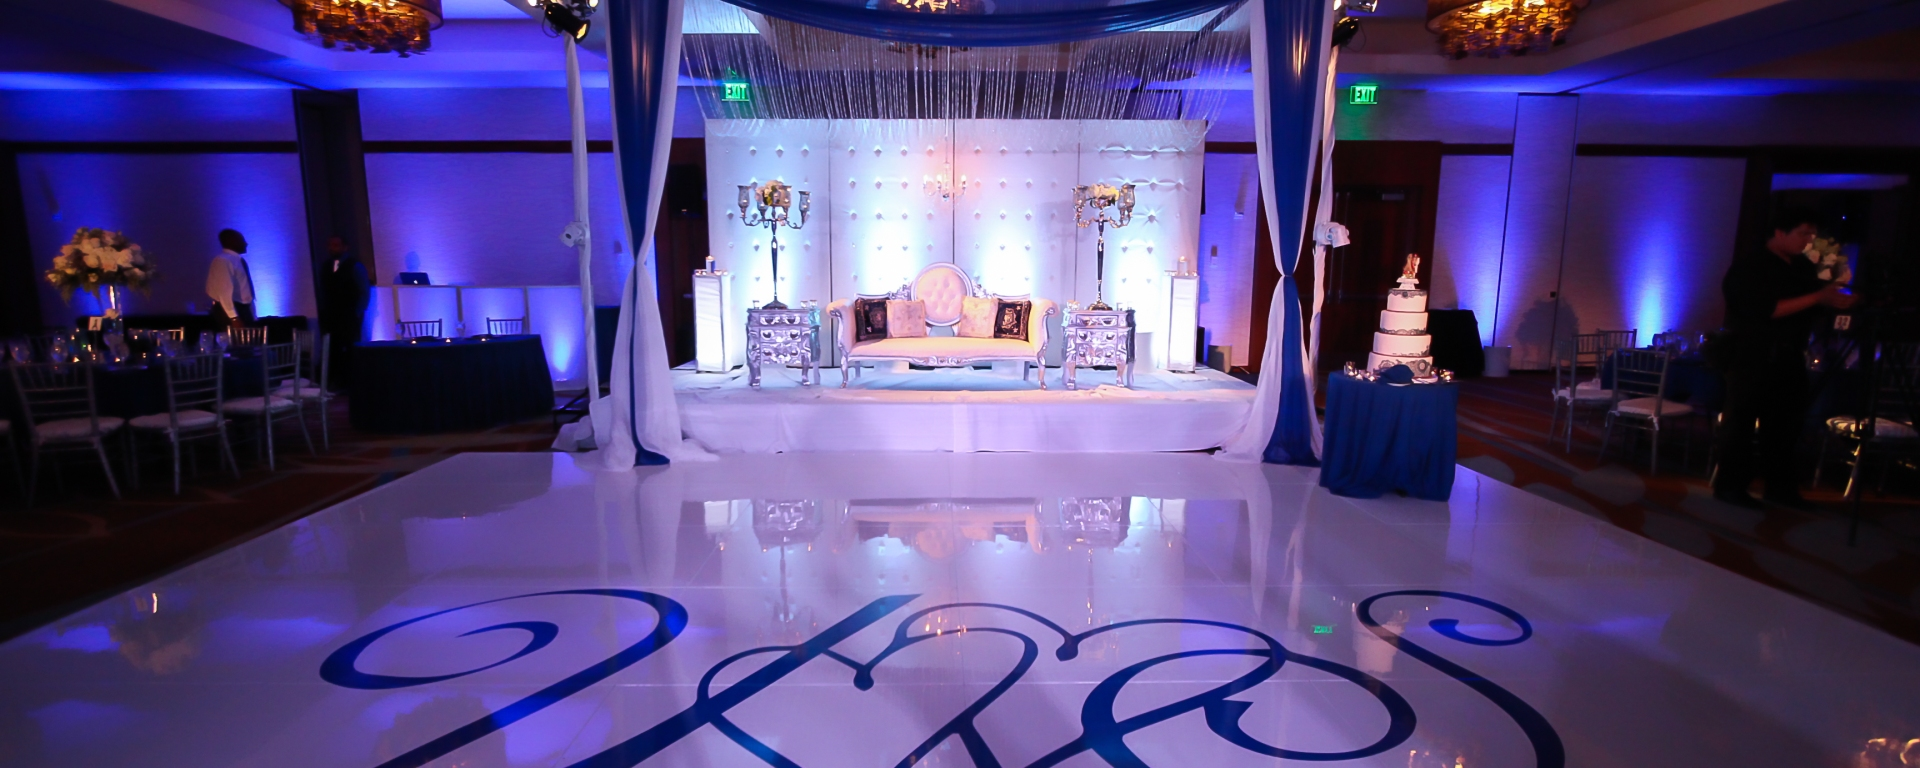 Navy Blue and Silver Decor – Indian Wedding Venues: Southern ...